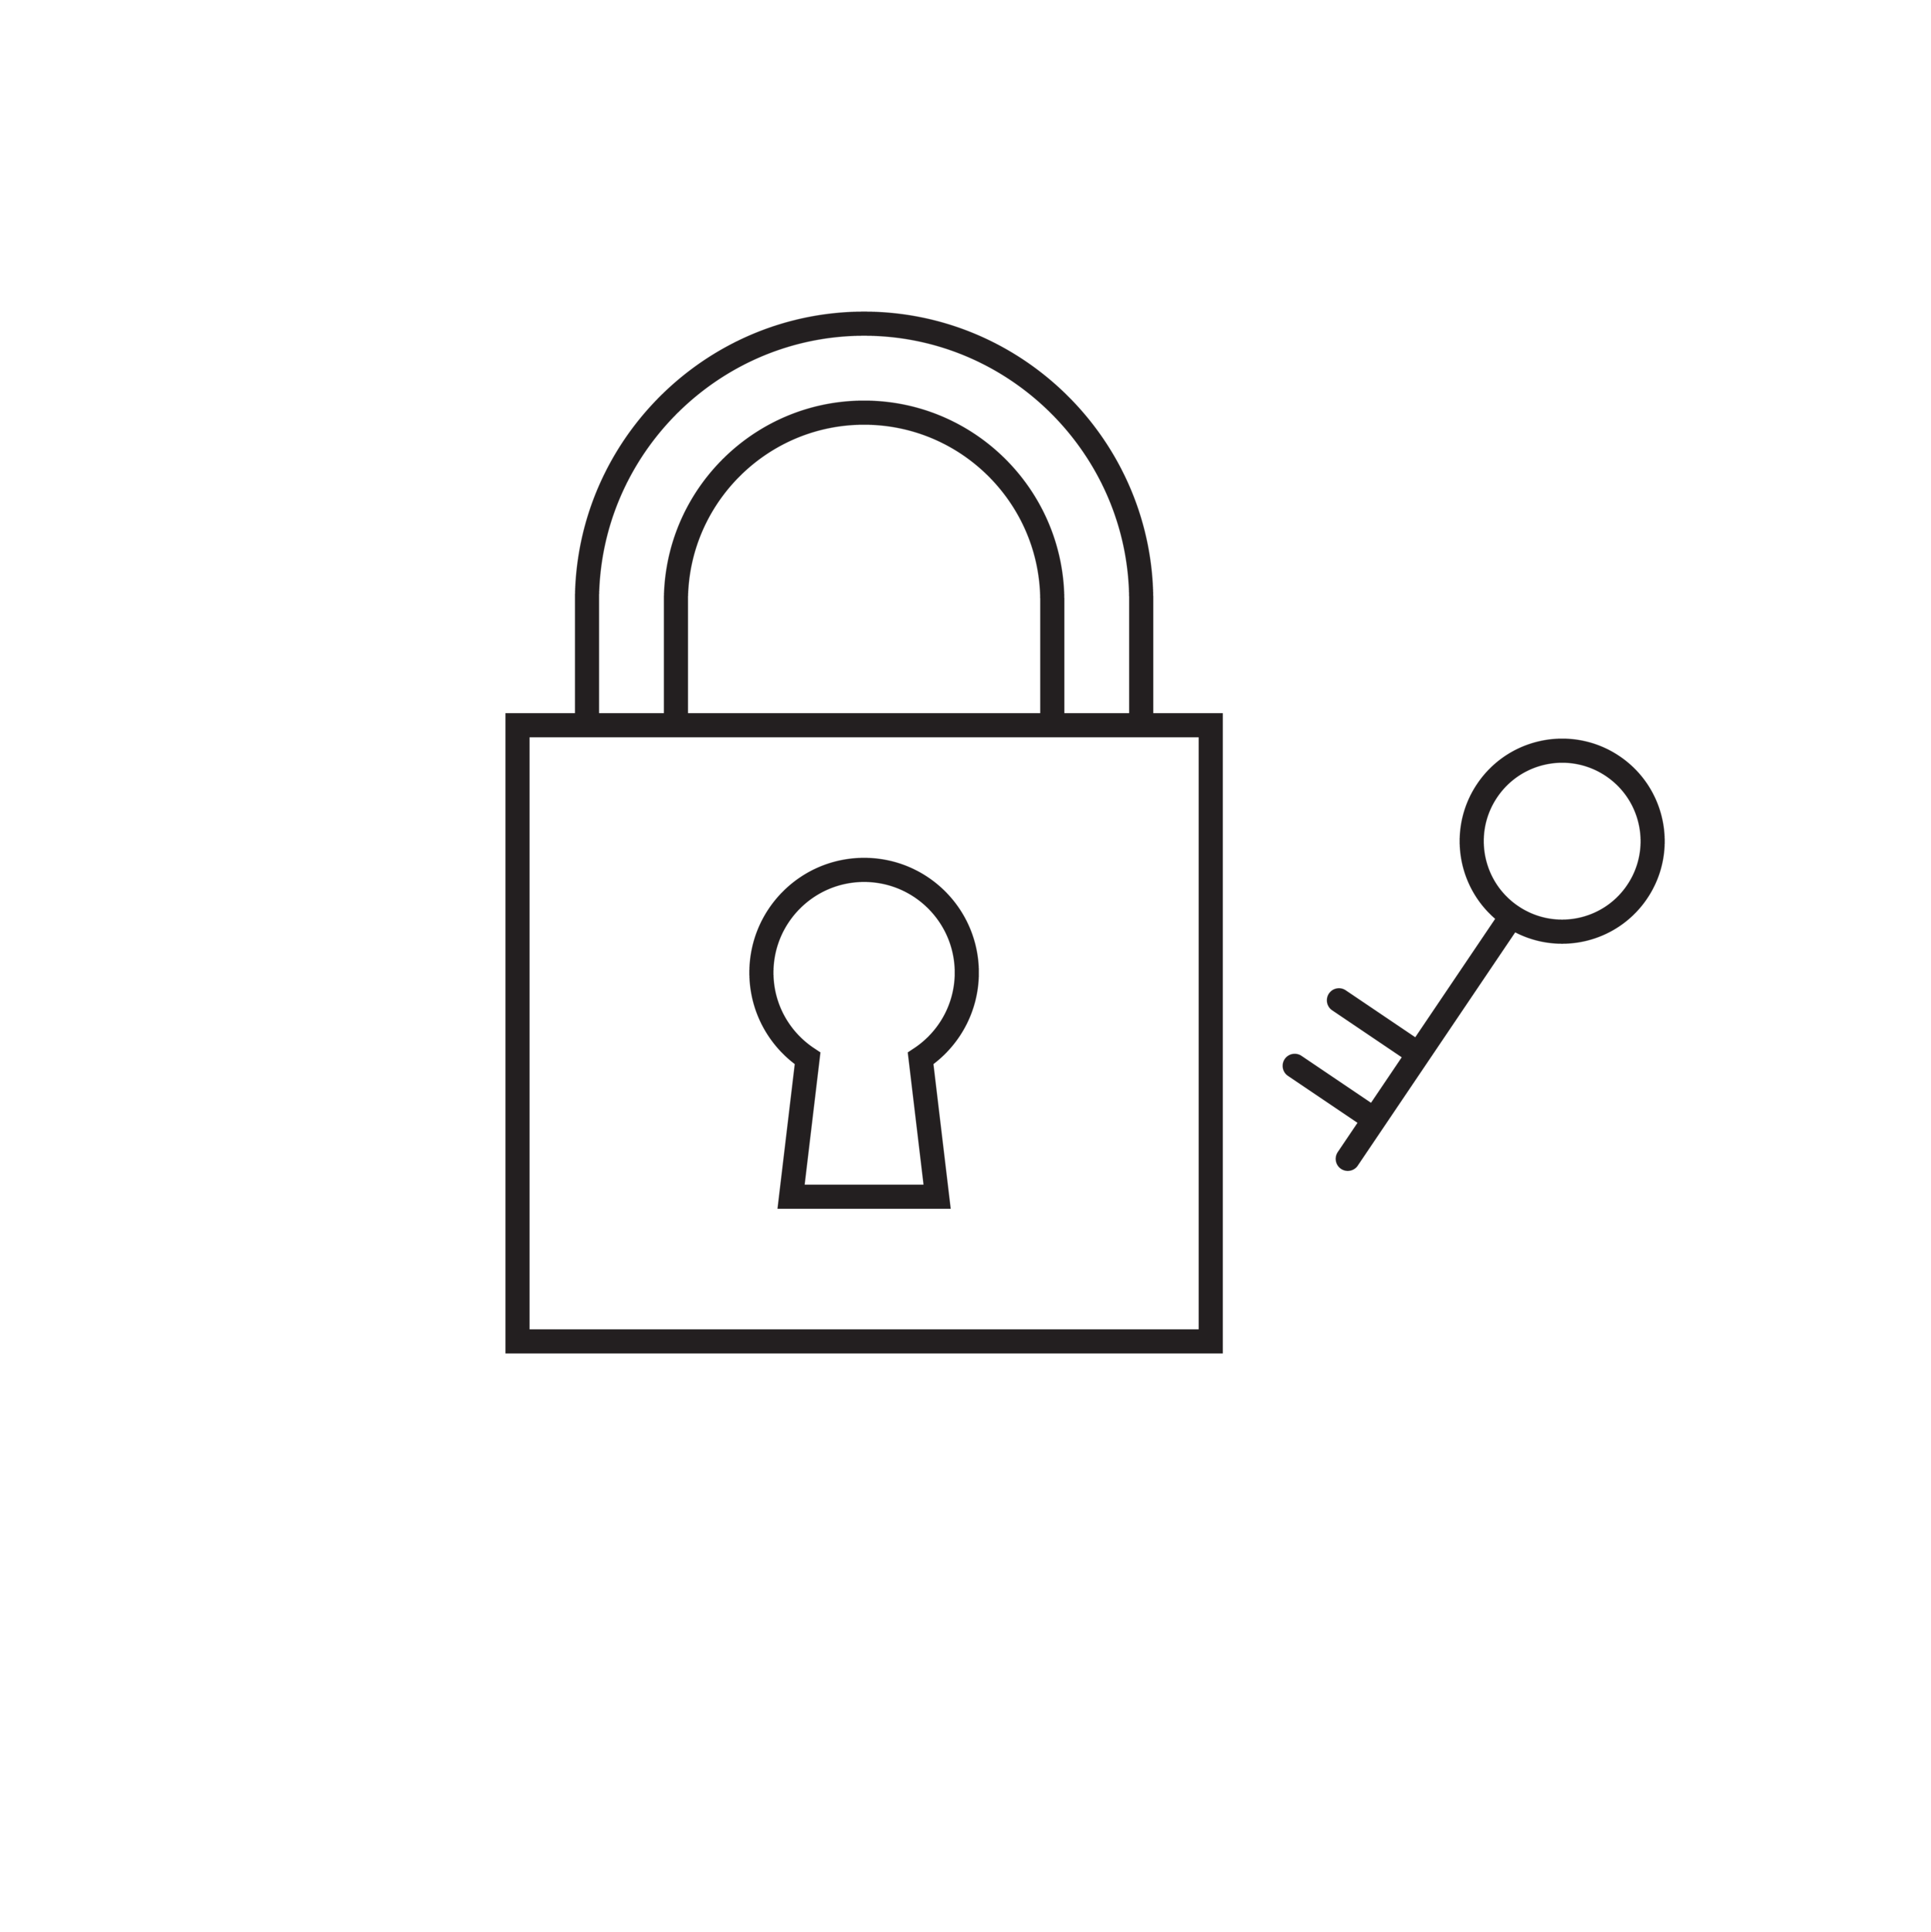 cae-home-solution-lock.png